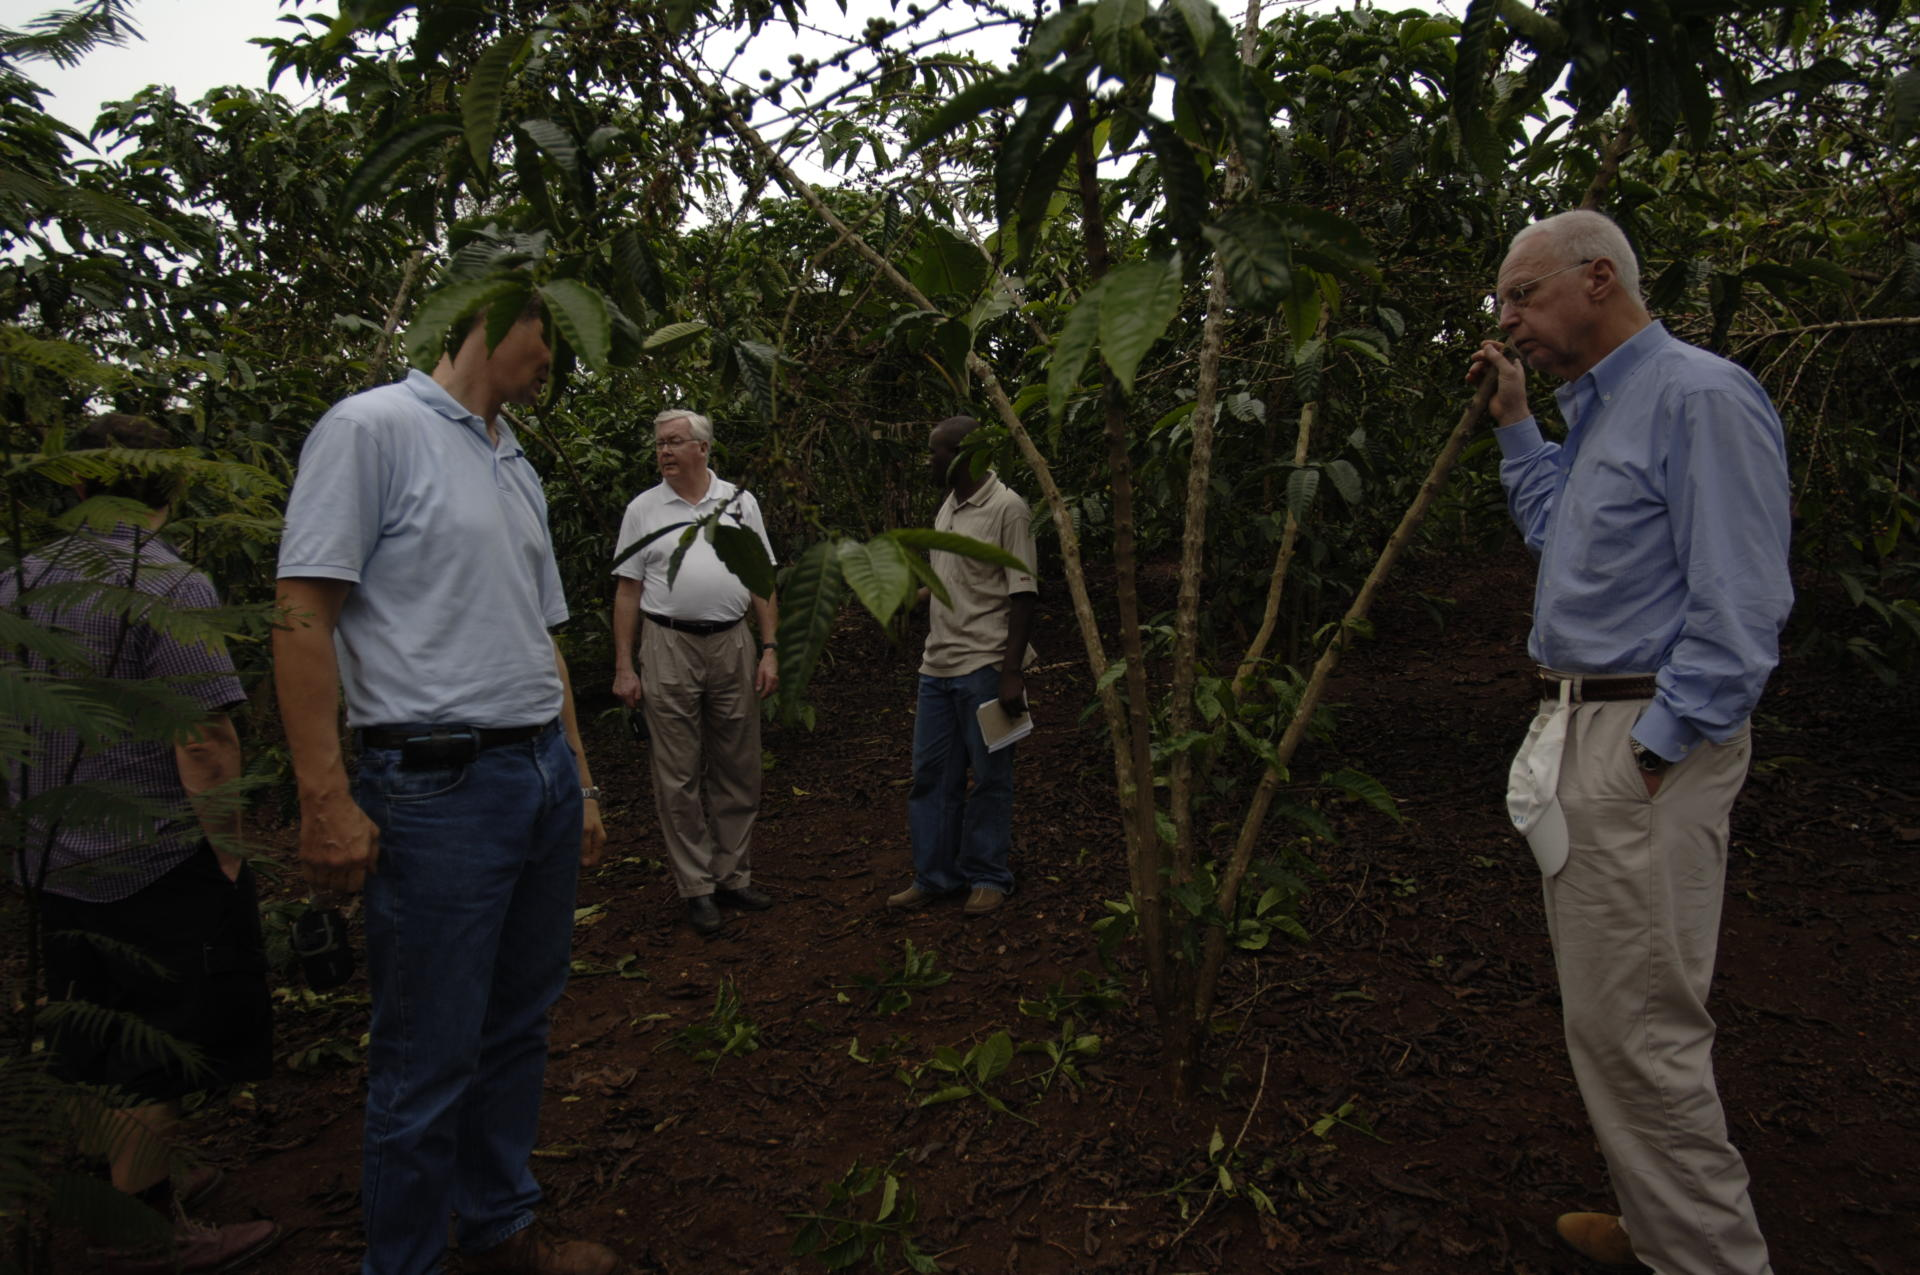 Exchanging knowledge on coffee production with coffee farmers in Uganda